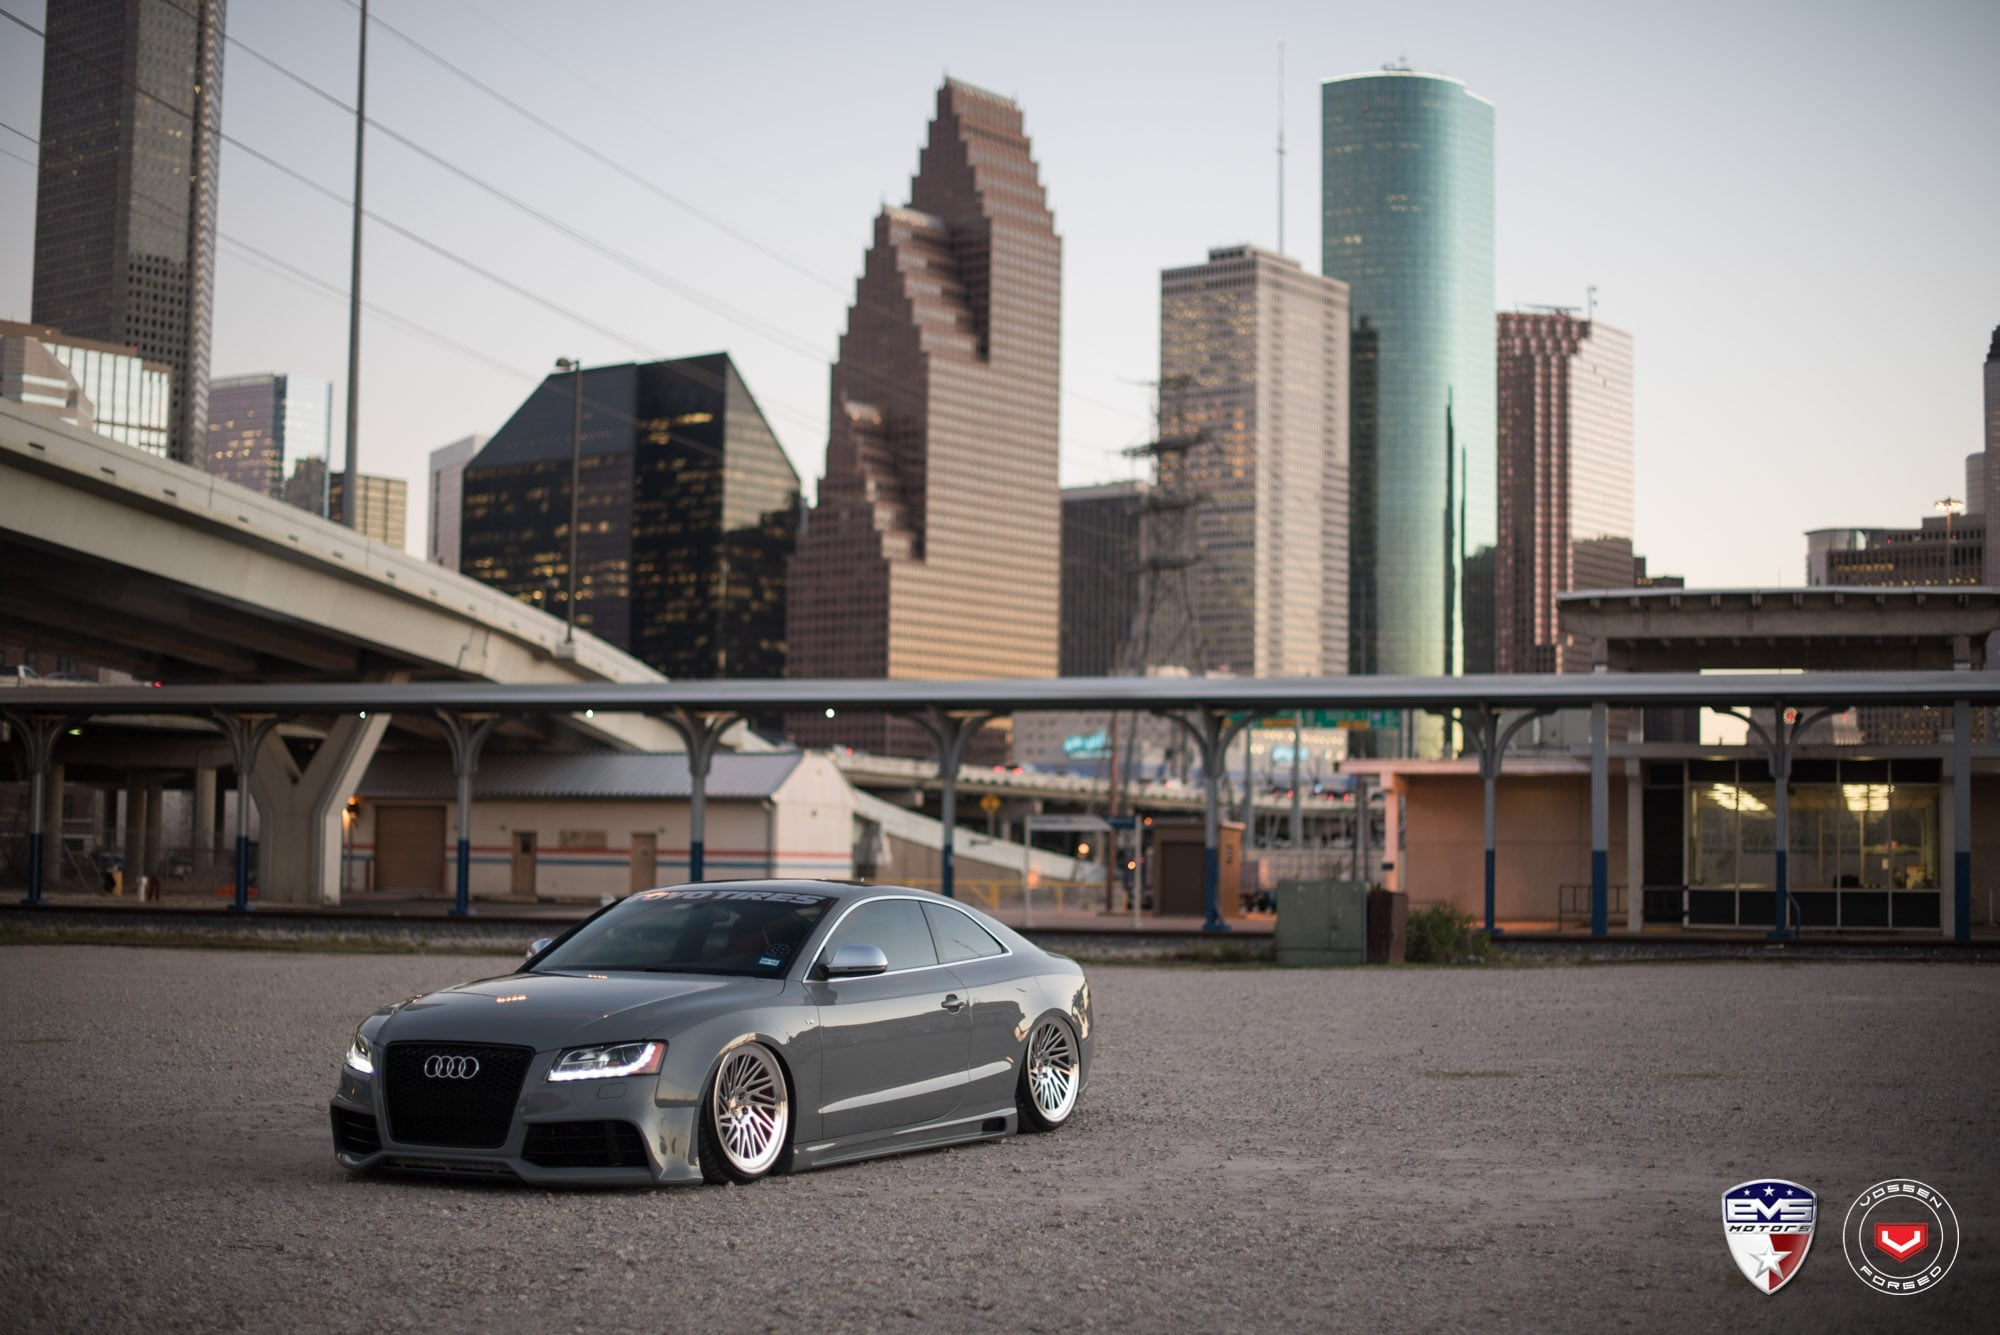 Amazing 2015 Audi S5 Coupe Tuning picture